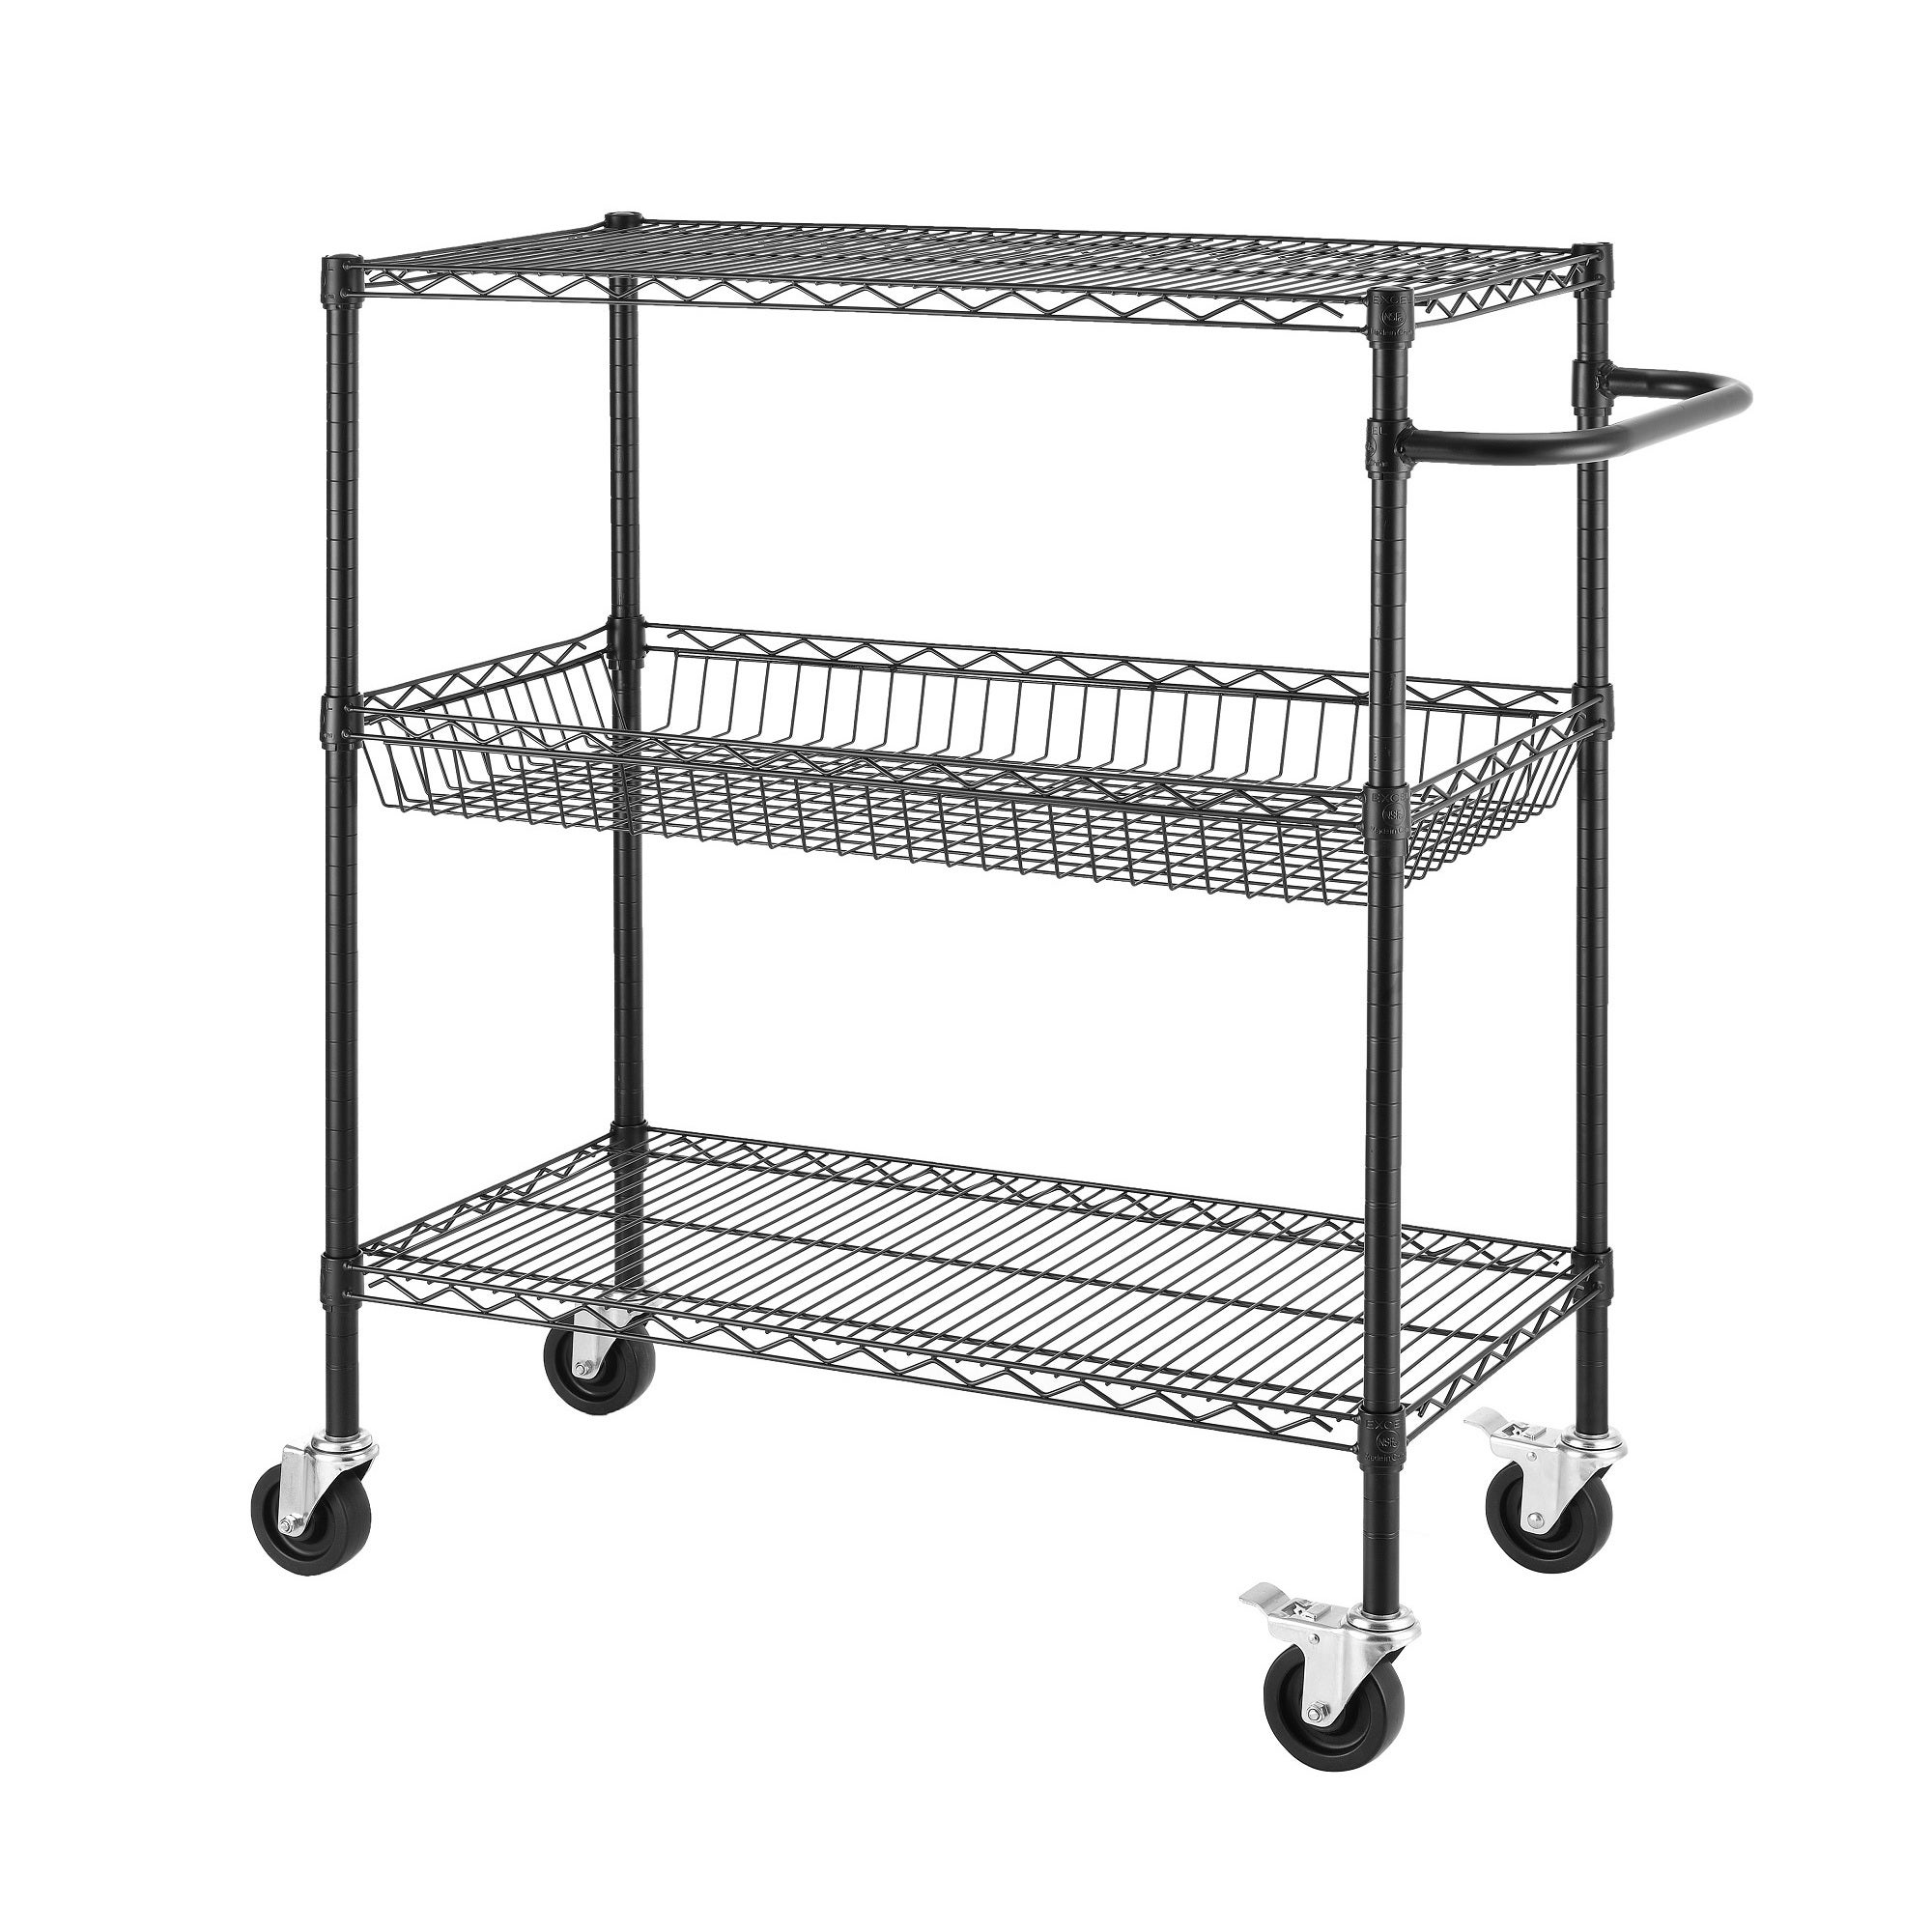 45-inch Heavy Duty Commercial Grade Black Wire Shelving Cart - Free ...